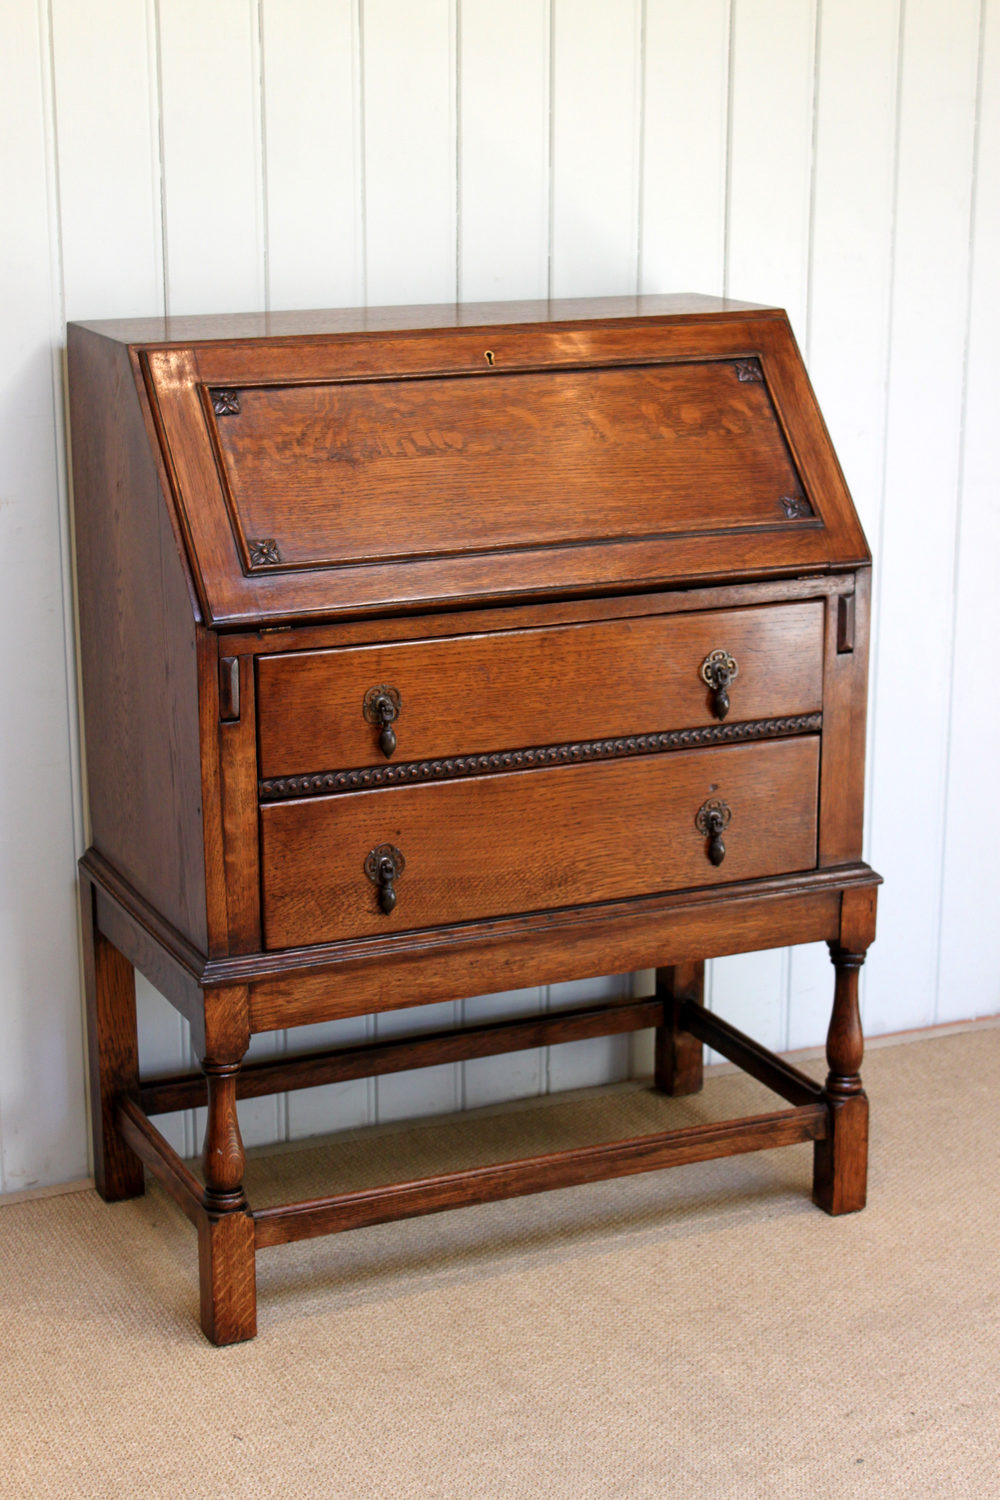 1920s solid oak bureau antiques atlas for Bureau antique